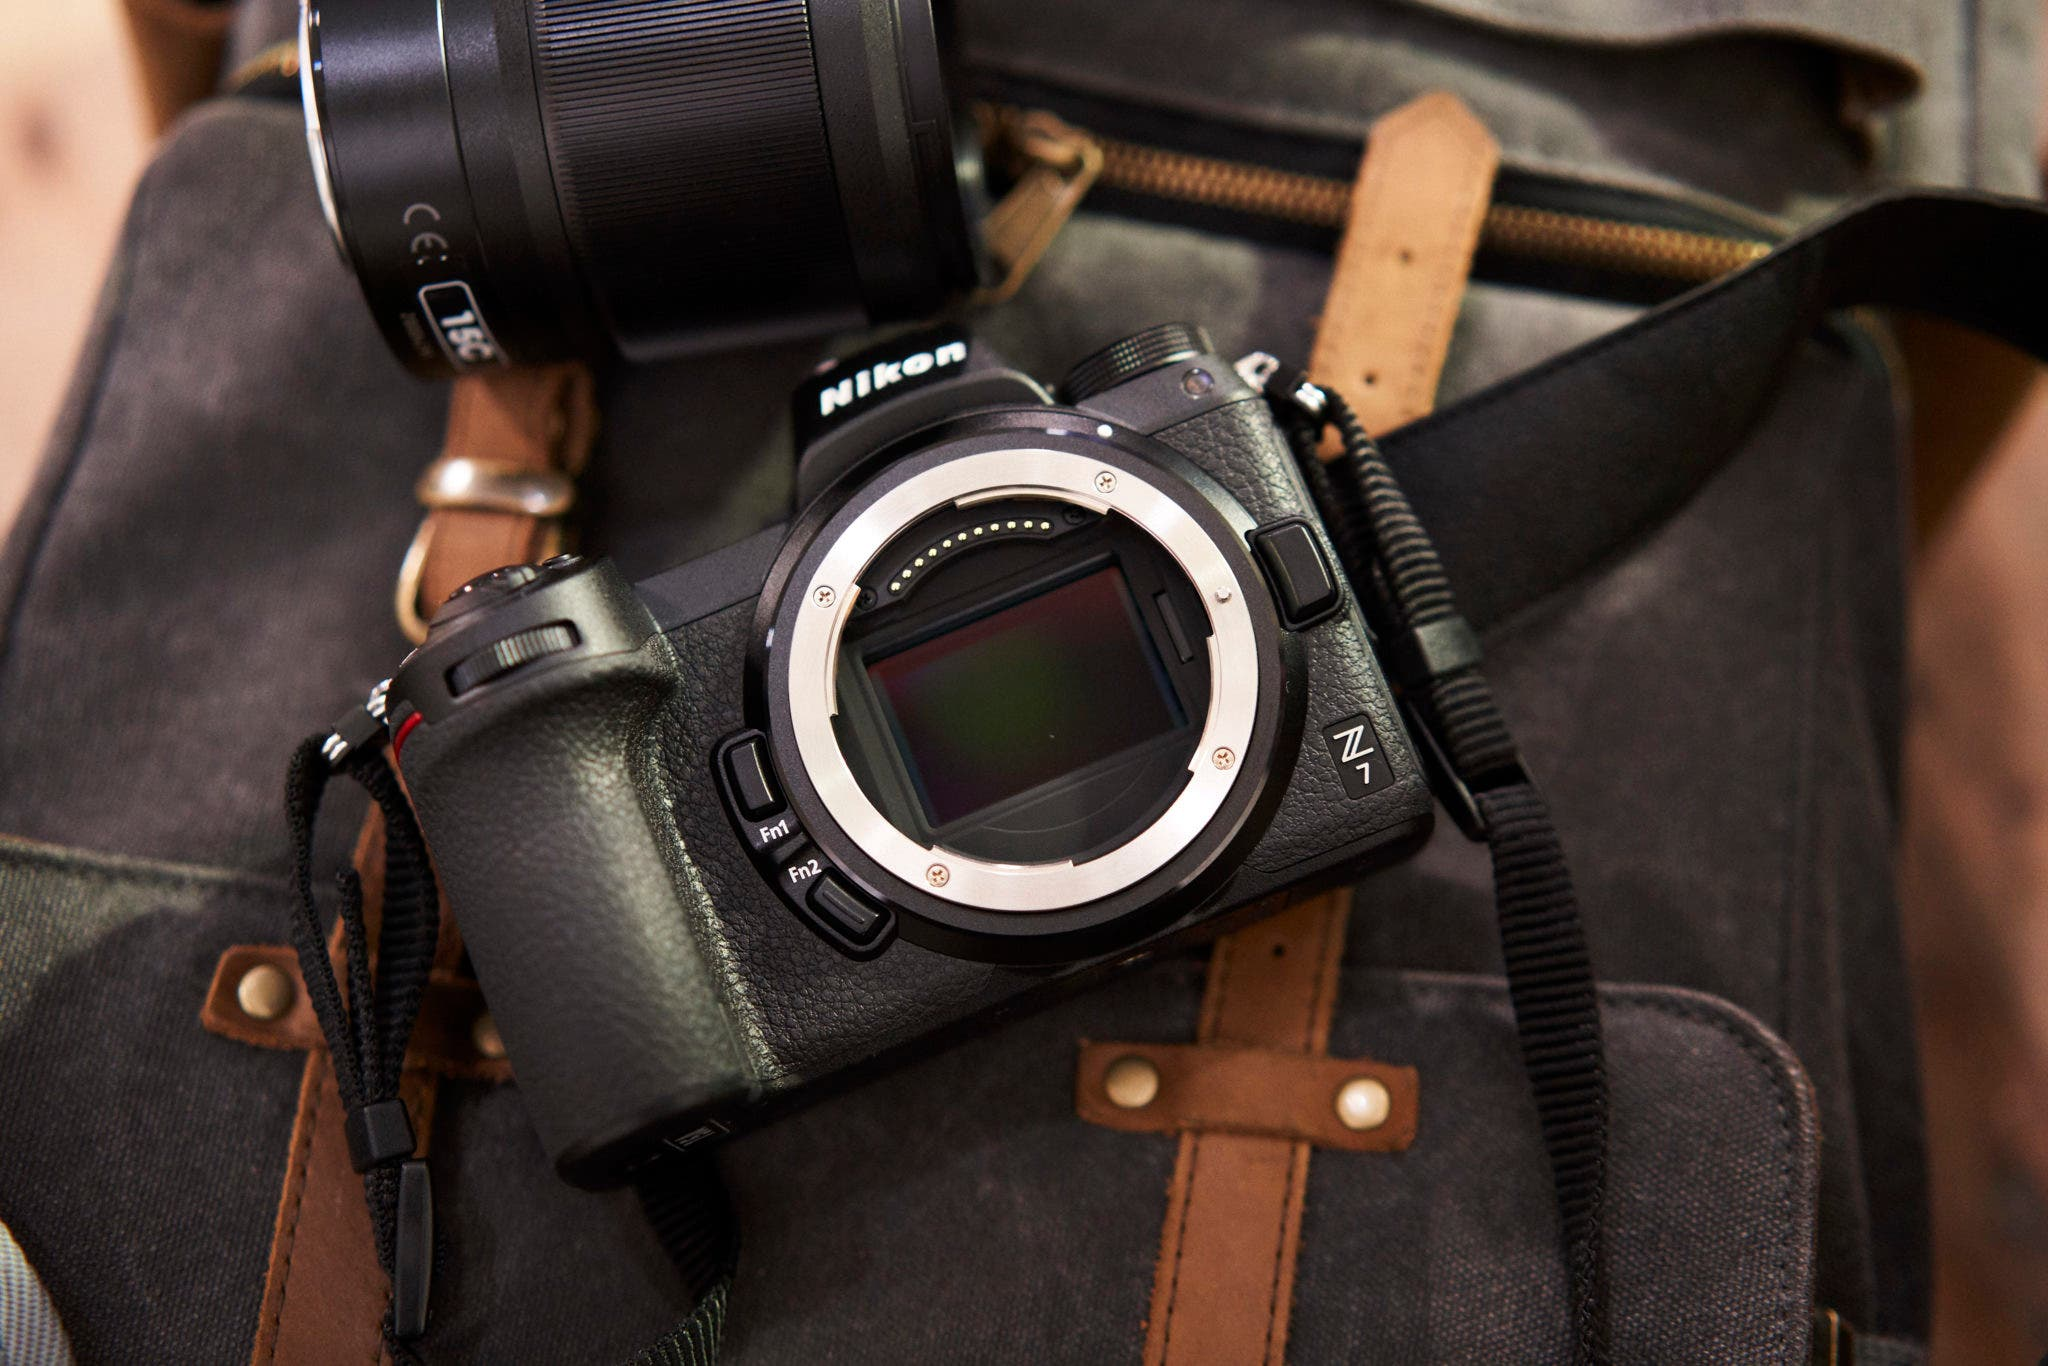 Things We'd Like to See in a $900 Nikon Full Frame Mirrorless Camera